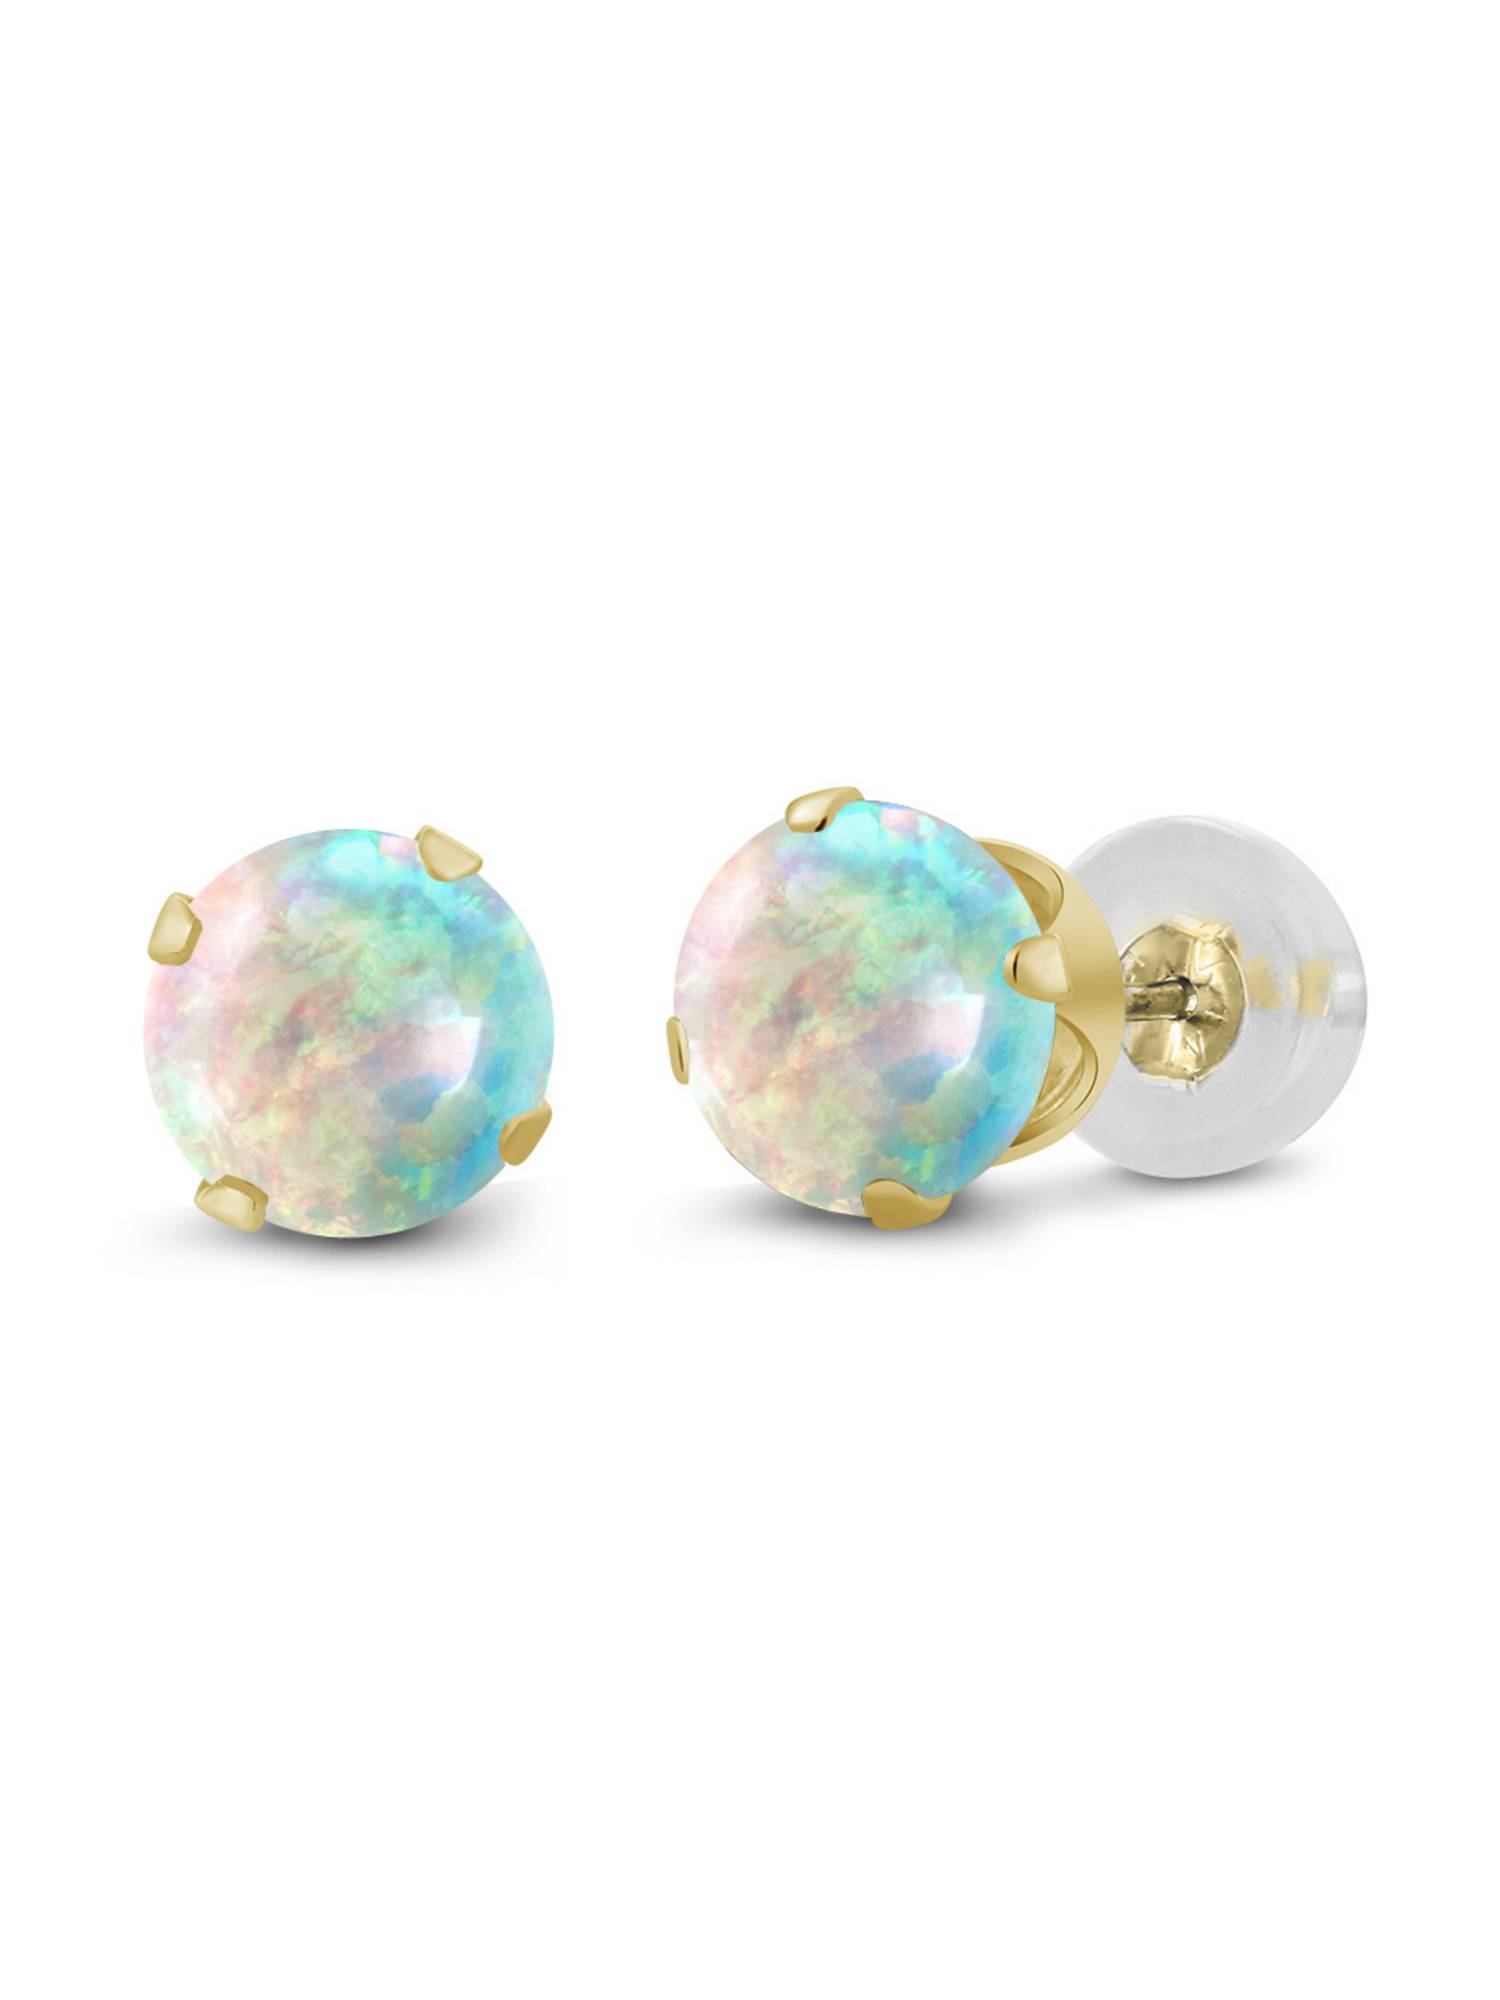 0.50 Ct Round Cabochon 4mm White Simulated Opal 14K Yellow Gold Stud Earrings by